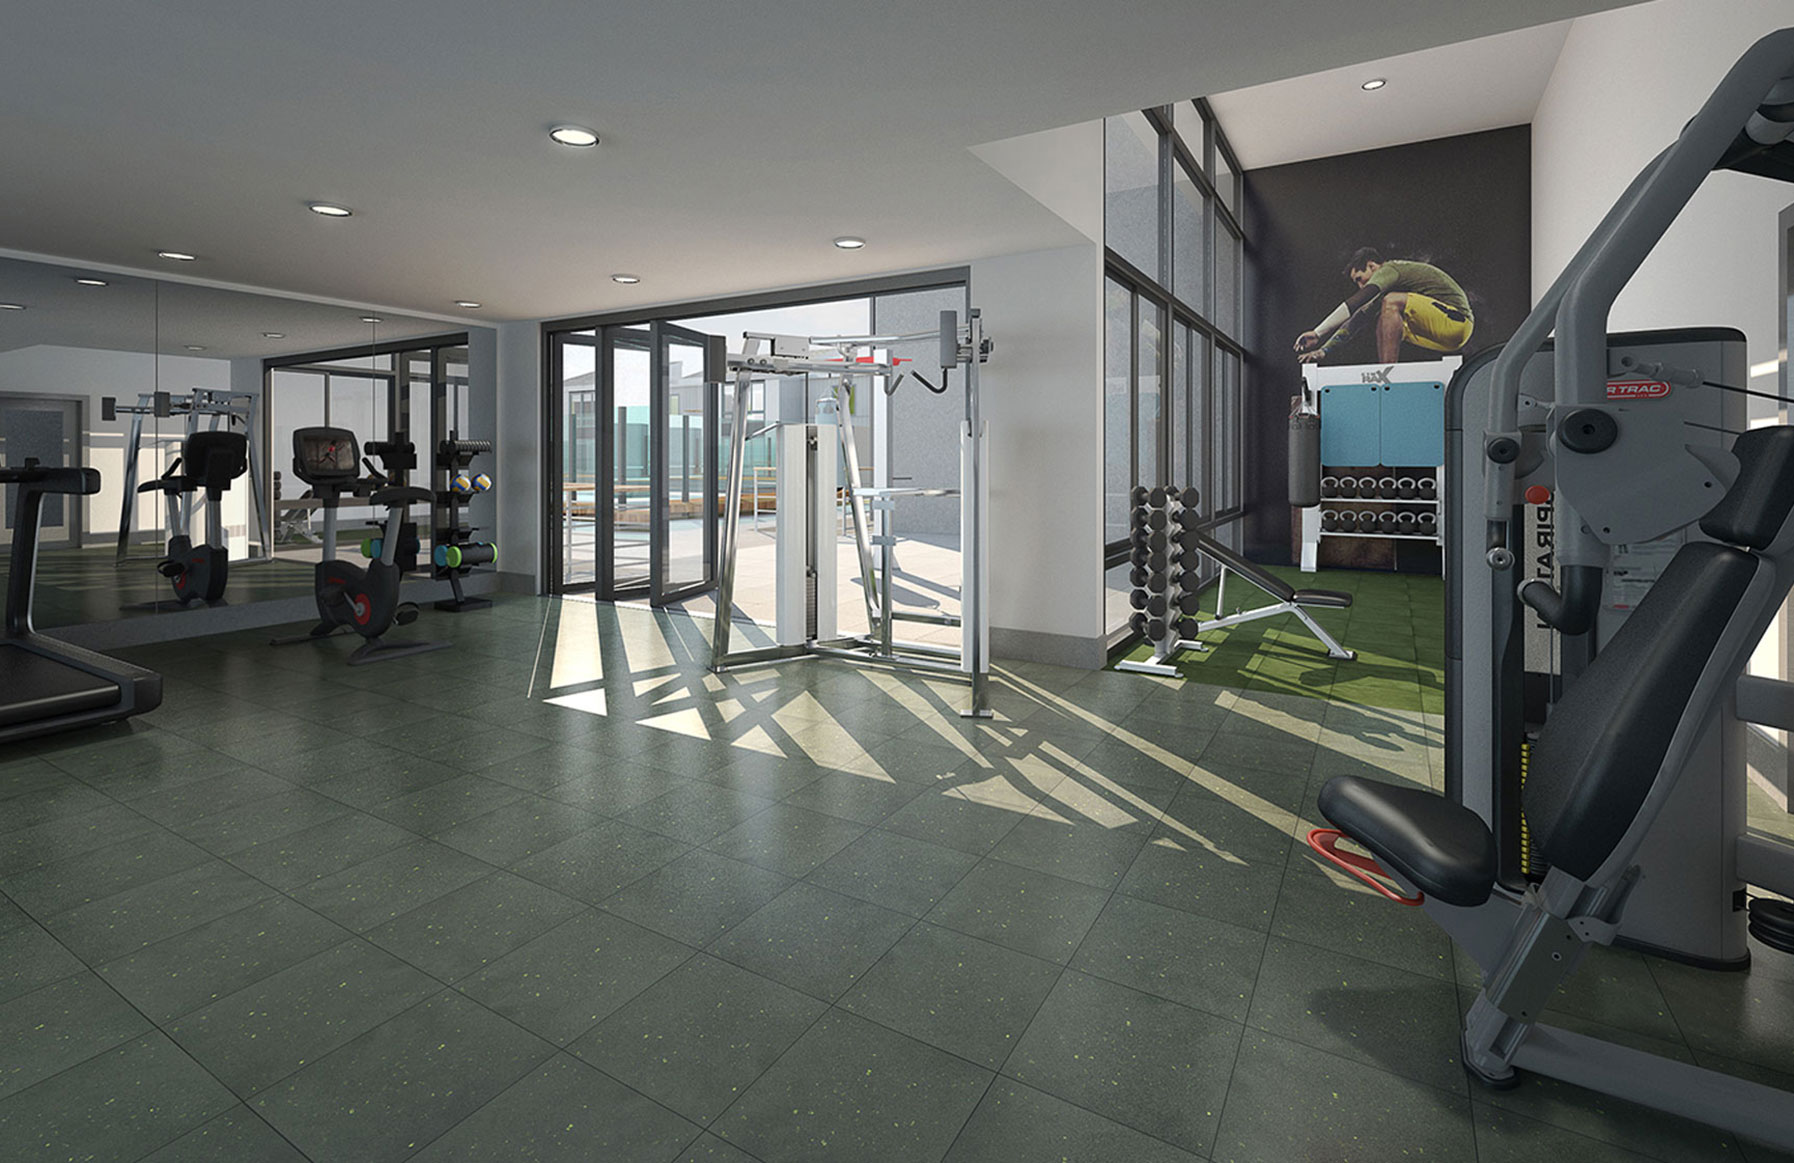 707 Leahy - Redwood City, CA - Fitness